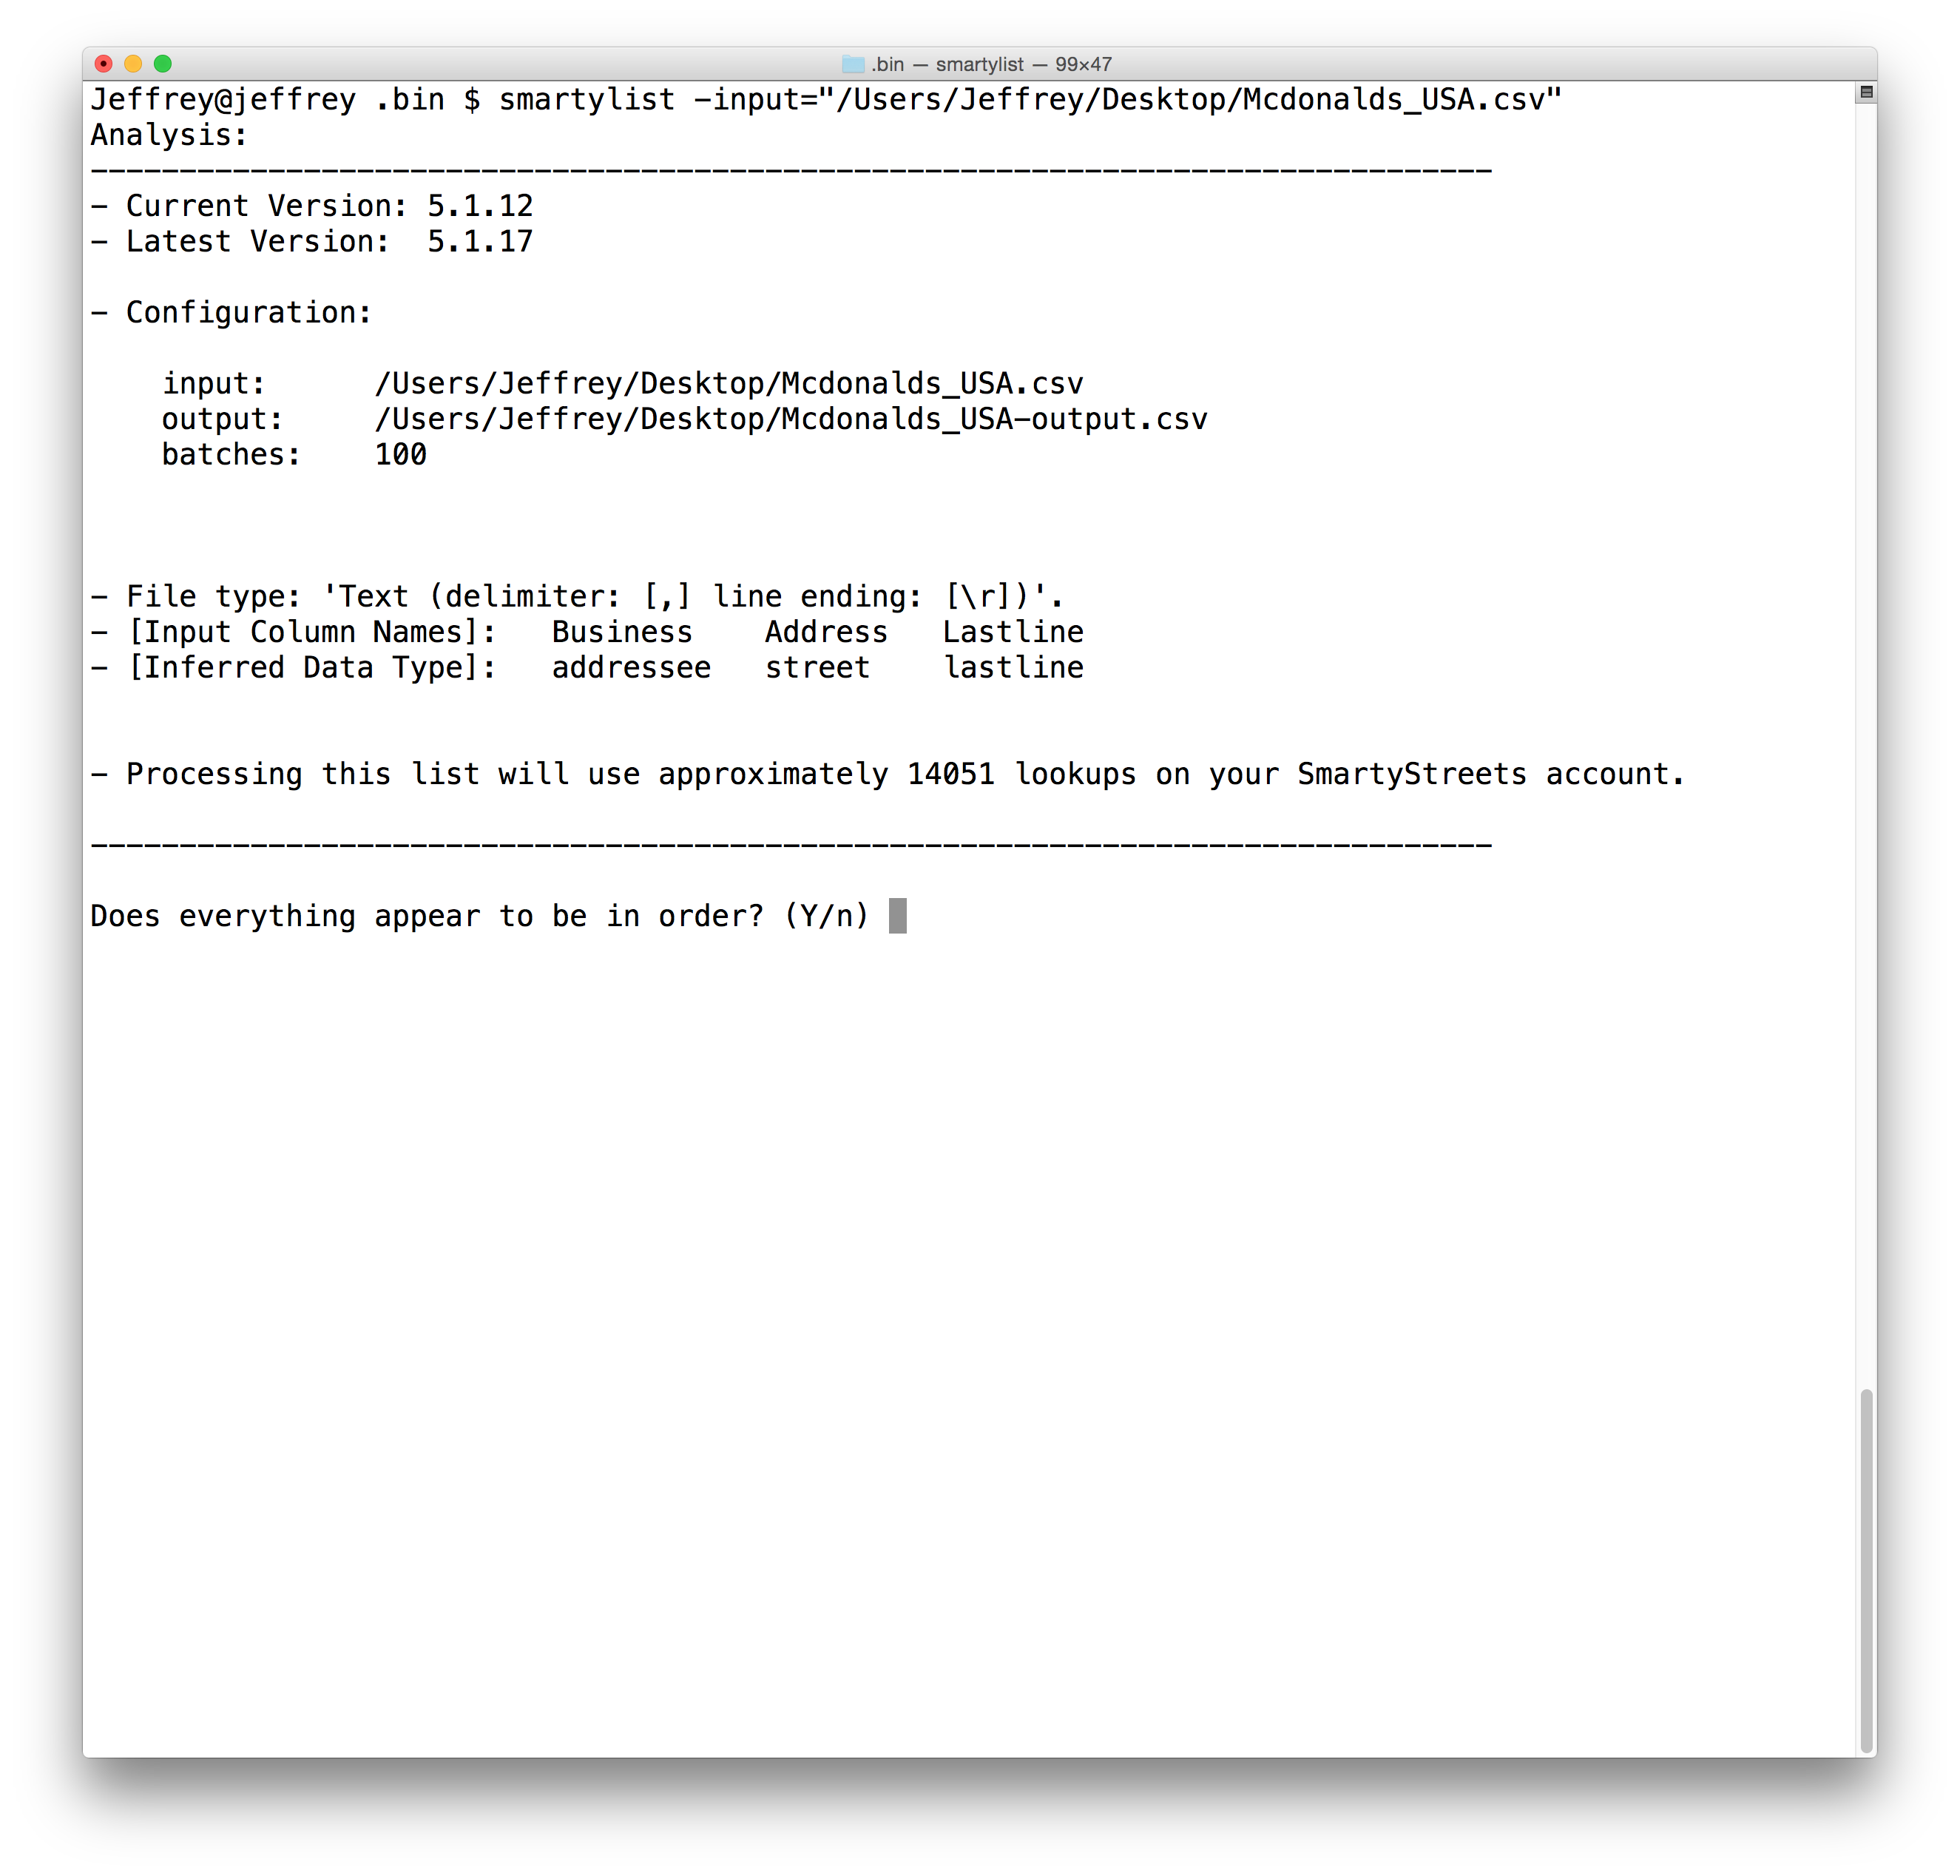 image of command line confirmation